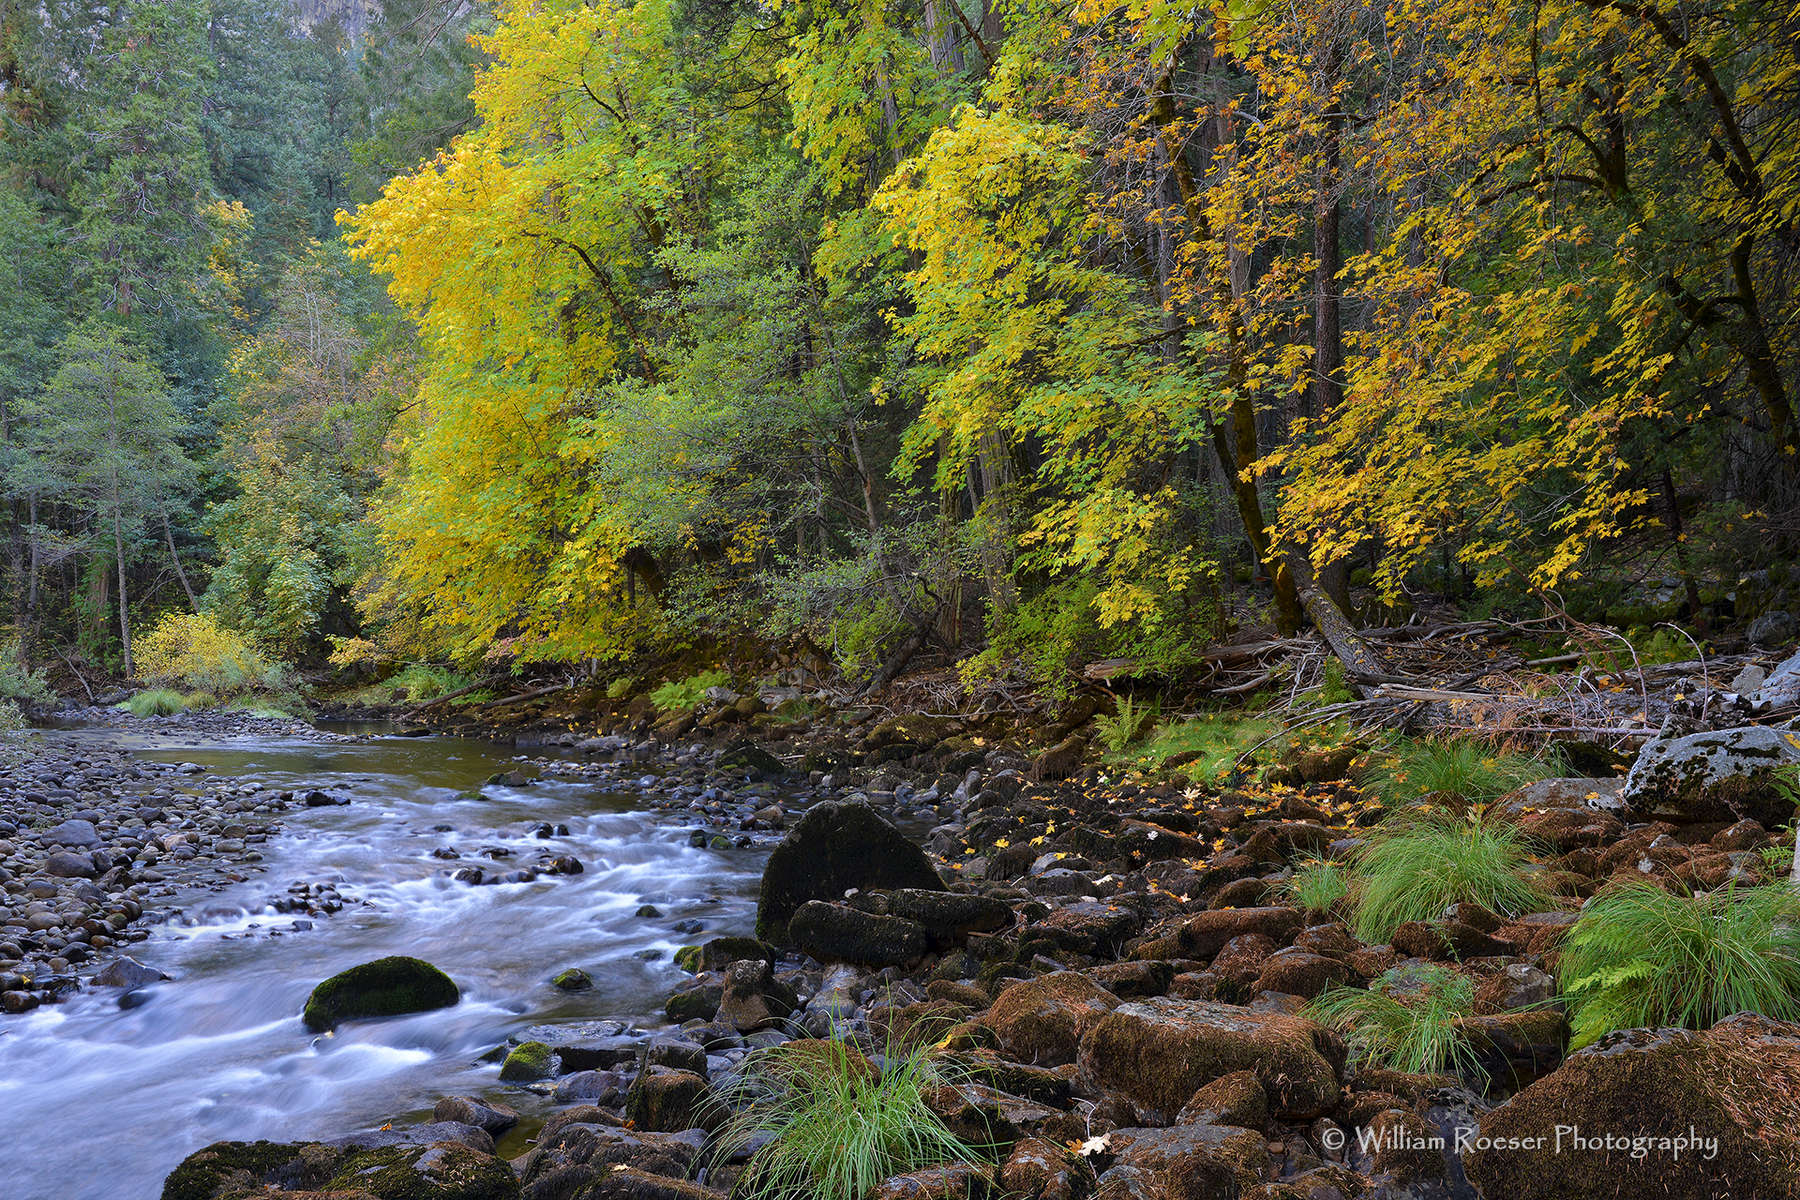 Yosemite-Fall-River-_Roeser_